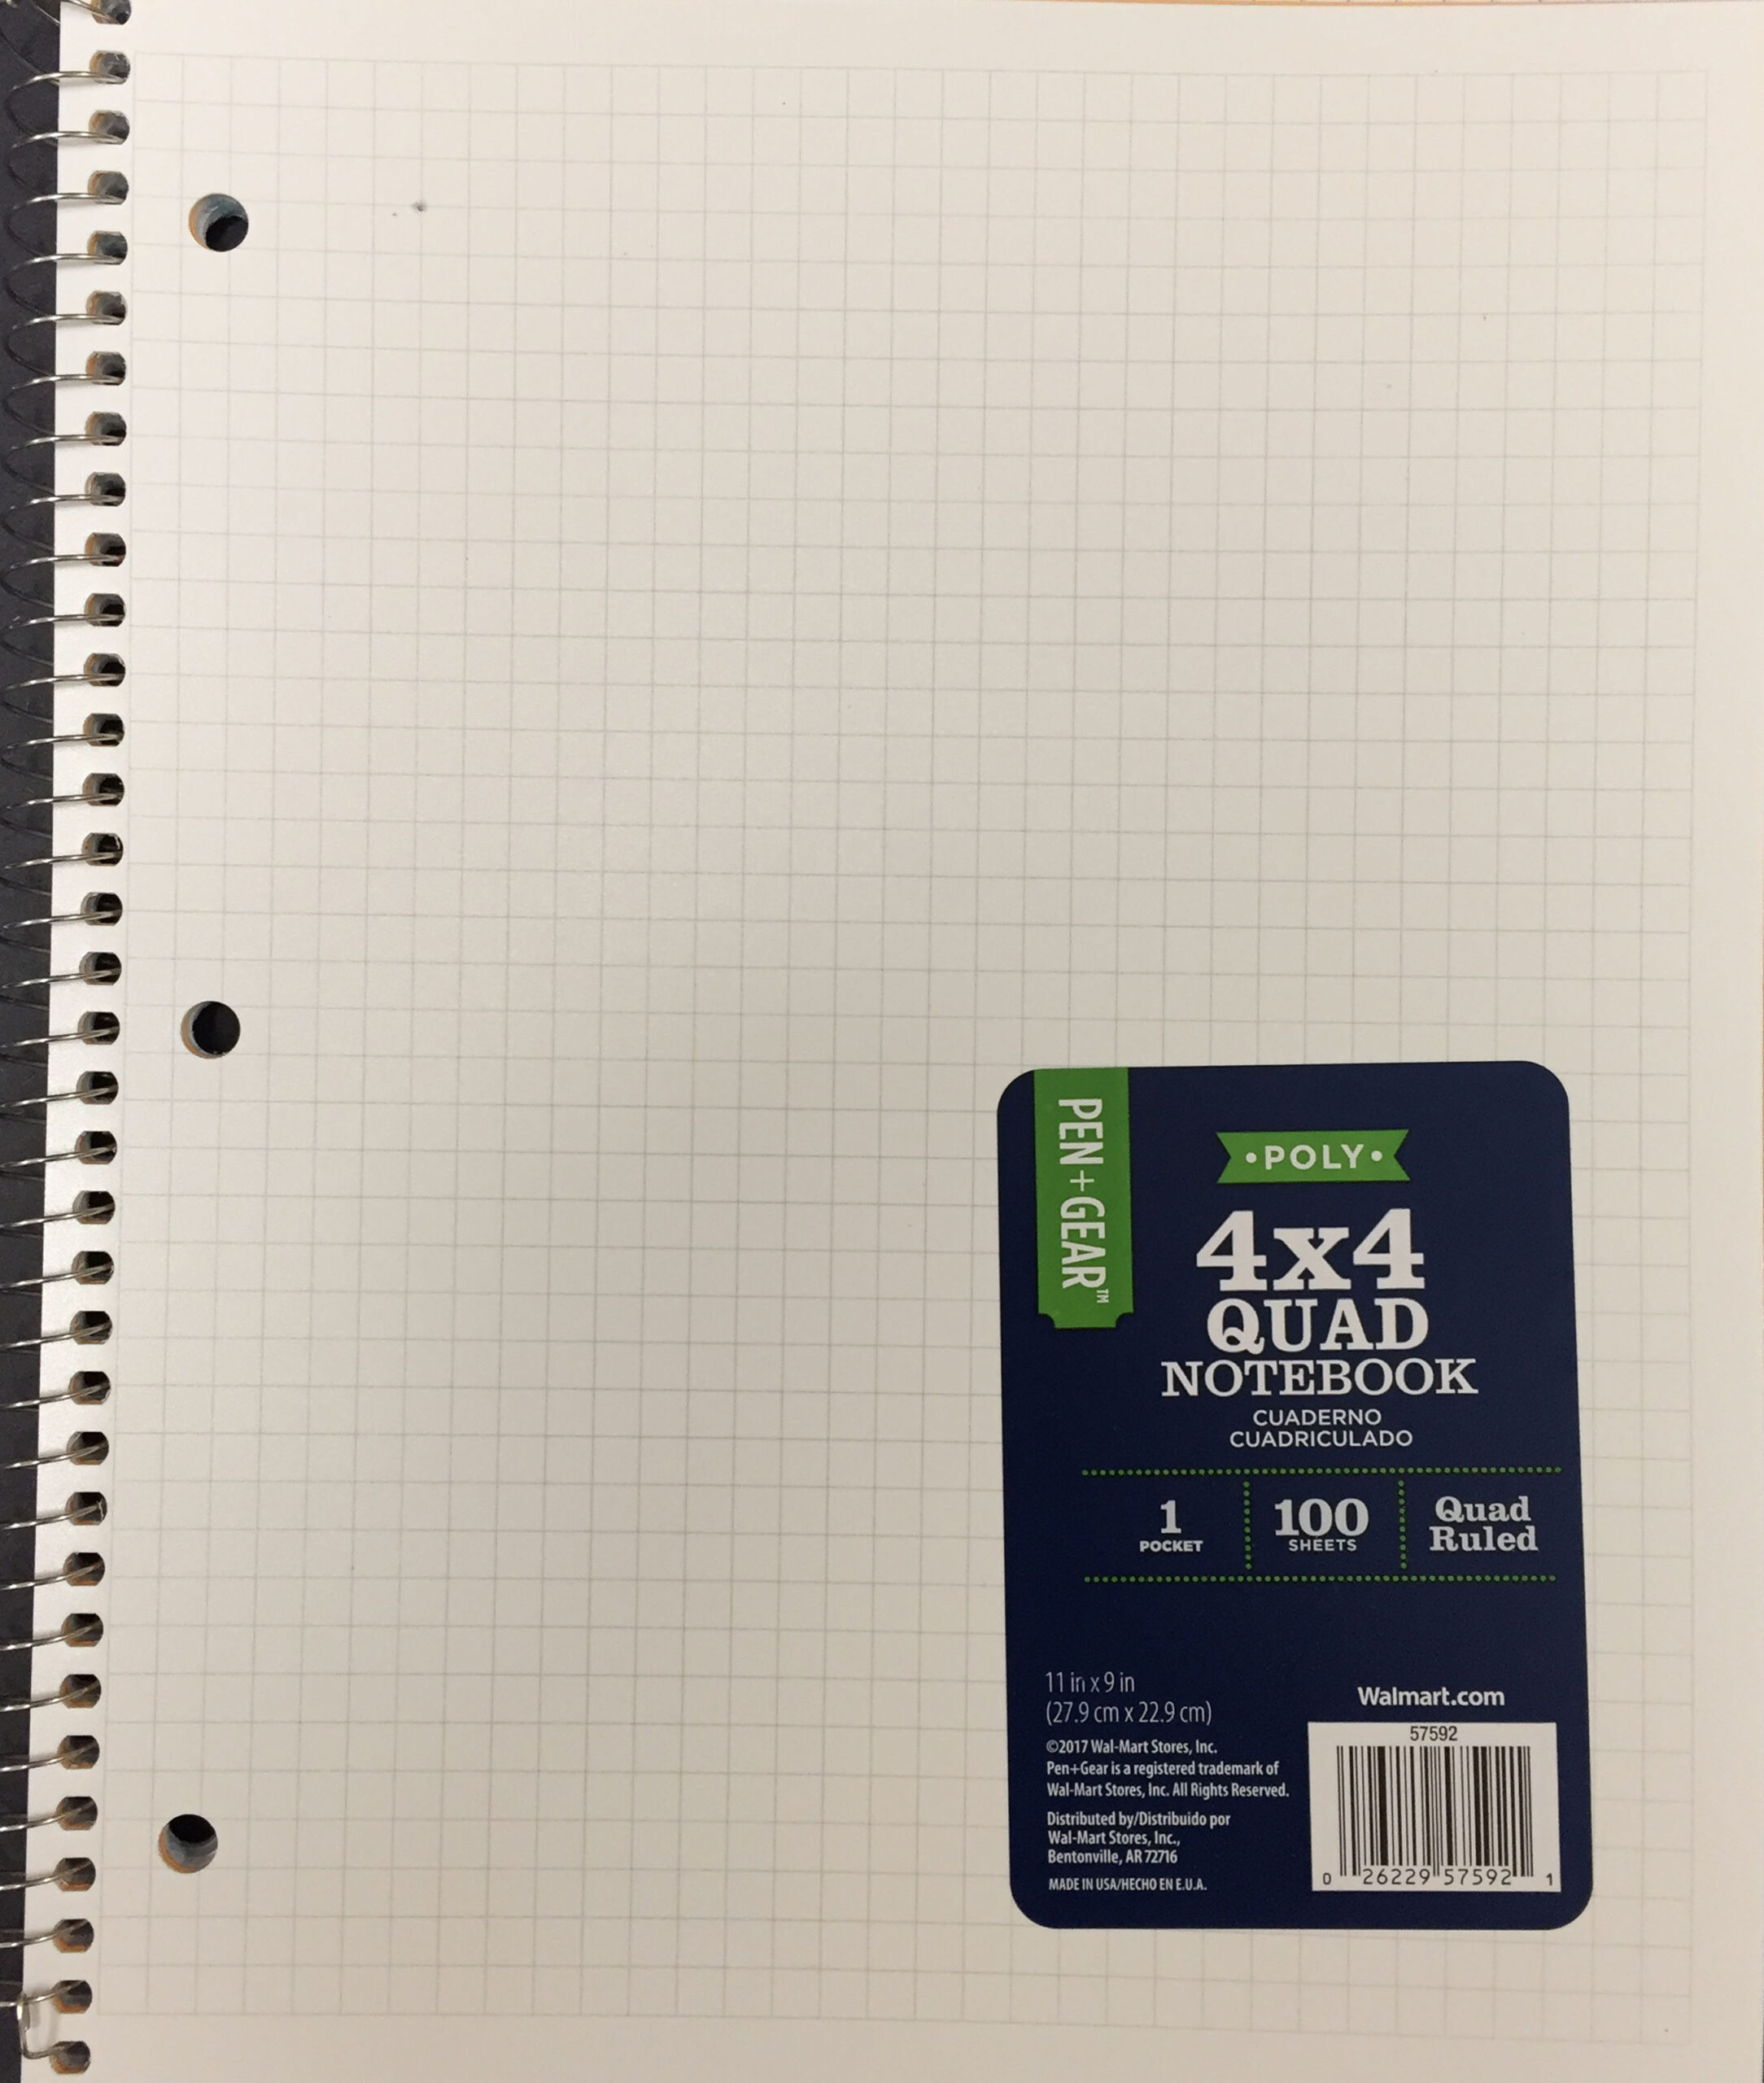 Pen + Gear Spiral Notebook, Graph Ruled, 1 Subject, 100 Pages, 9″ x 11″, Color Choice Will Vary, 57592 (Walmart)